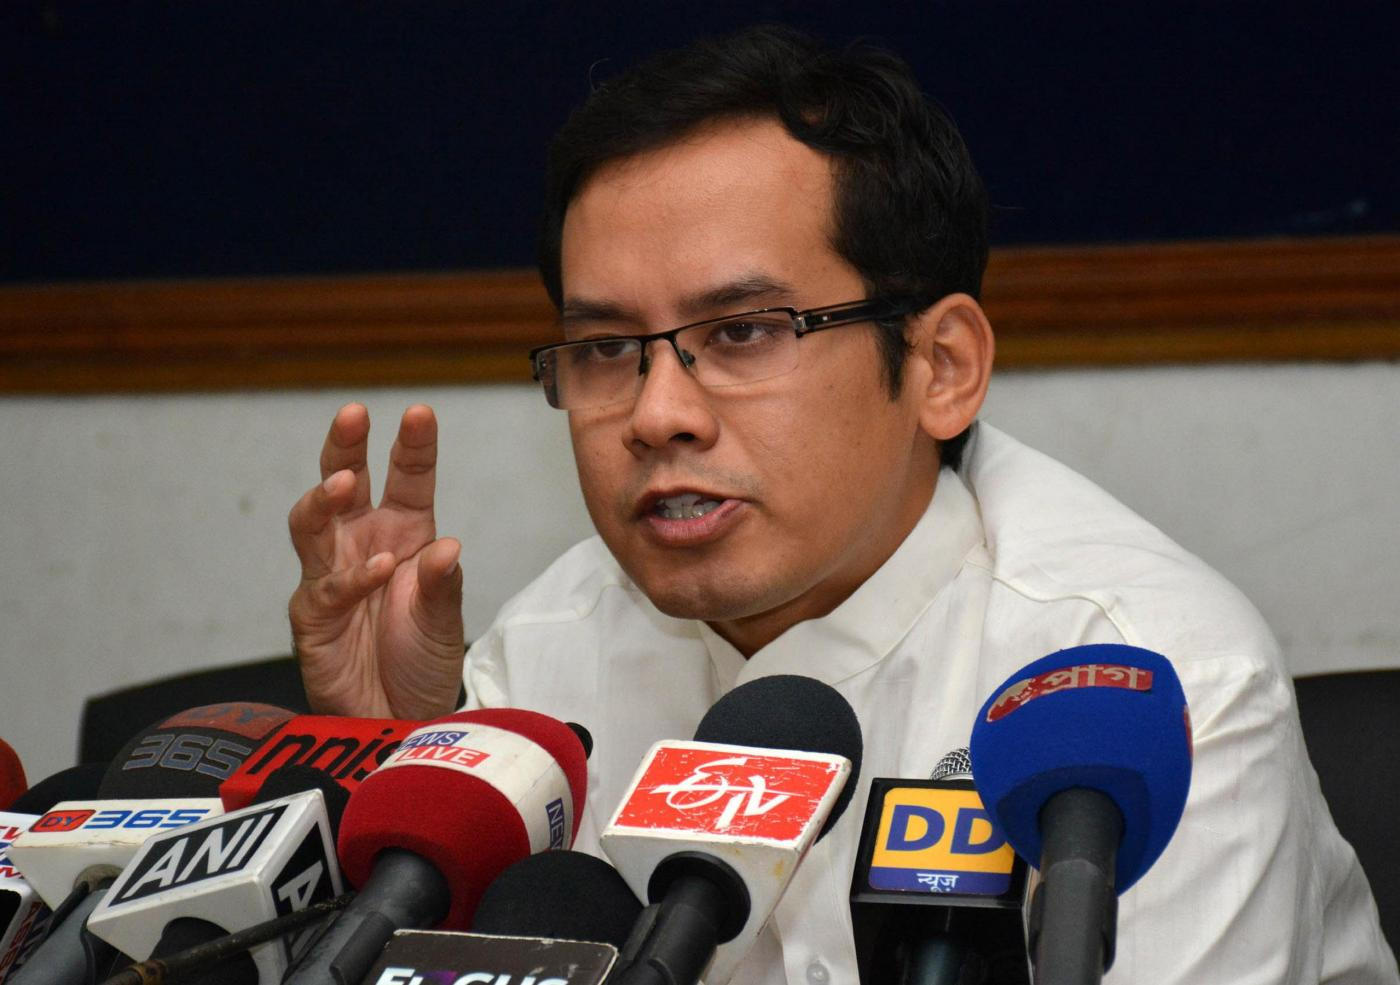 Congress MP from Kaliabor Gaurav Gogoi addresses a press conference in Guwahati on July 28, 2014. (Photo: IANS) by .